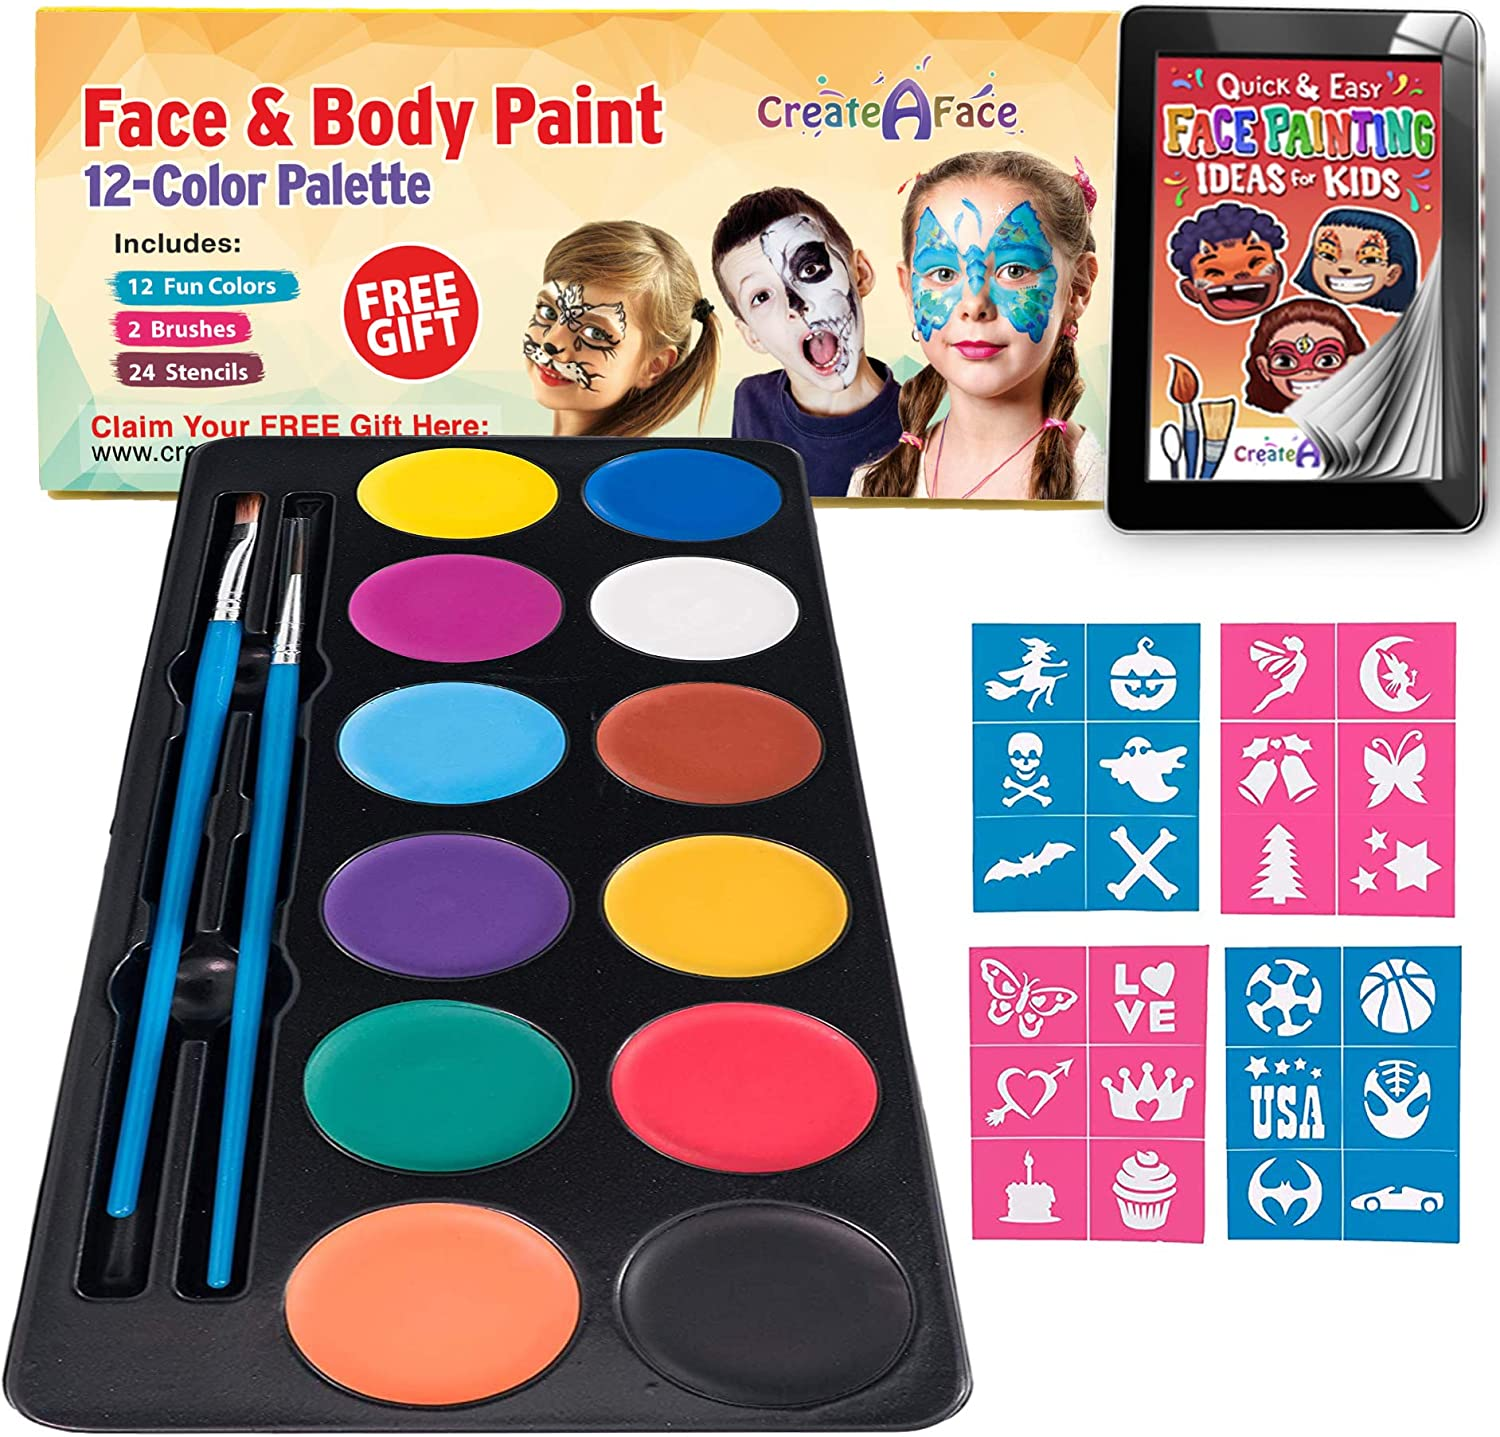 Face Paint Body Painting Palette 12 Vibrant Water Colors 24 Stencils 2 Brushes Tutorial Ebook For Beginners Ideal For Sensitive Skin 100 Safe Halloween Party Makeup Amazon Co Uk Beauty